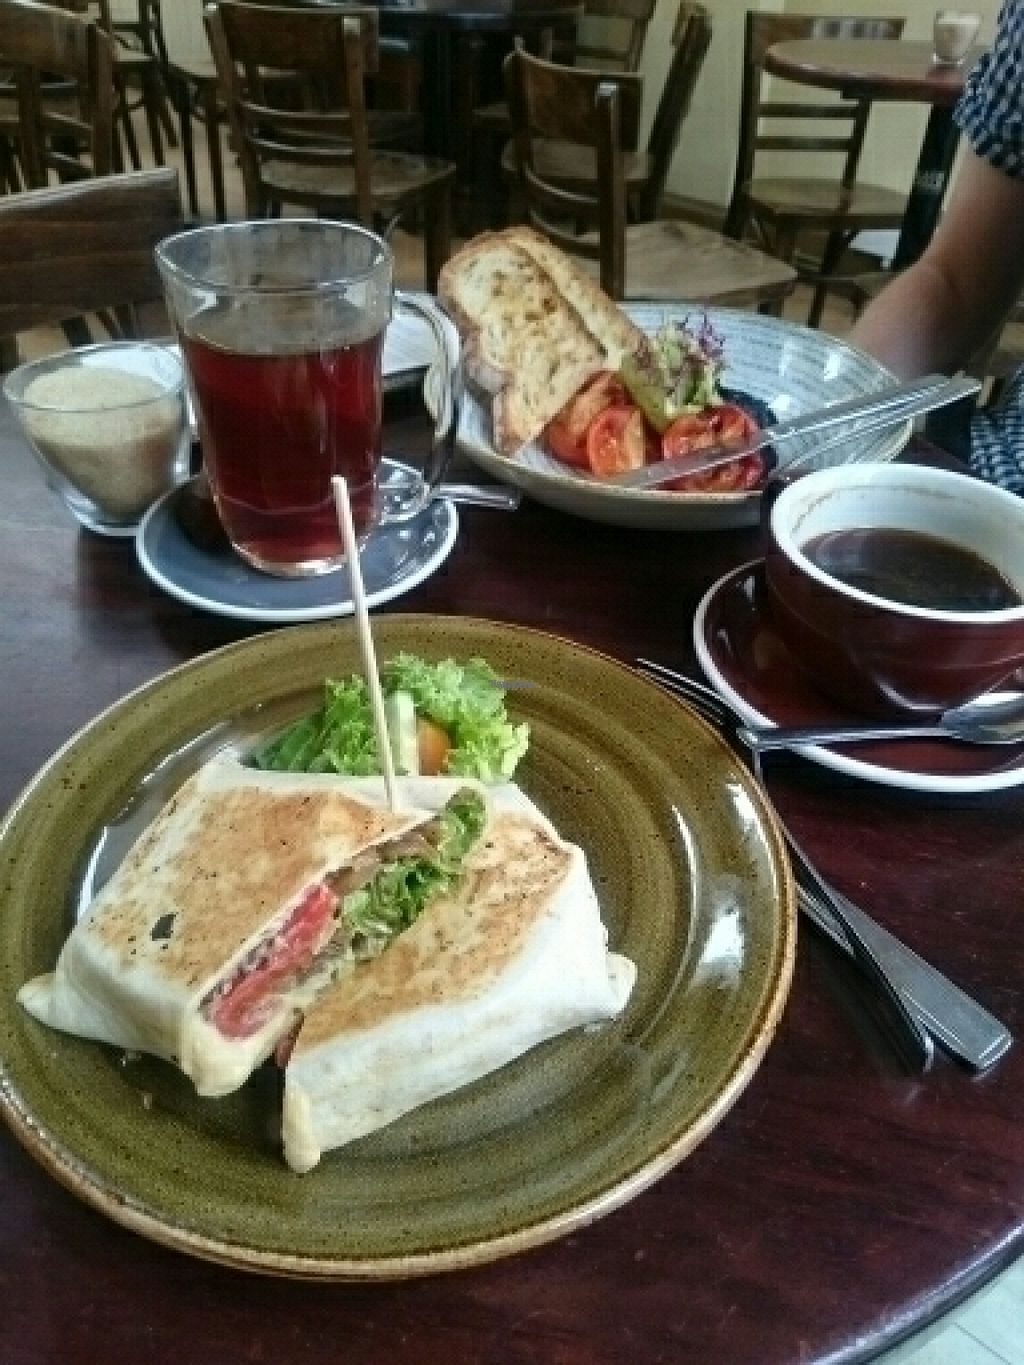 """Photo of Red Roaster  by <a href=""""/members/profile/CeciliaJohansson"""">CeciliaJohansson</a> <br/>Vegan wrap and veganised toast  <br/> August 14, 2016  - <a href='/contact/abuse/image/32246/168470'>Report</a>"""